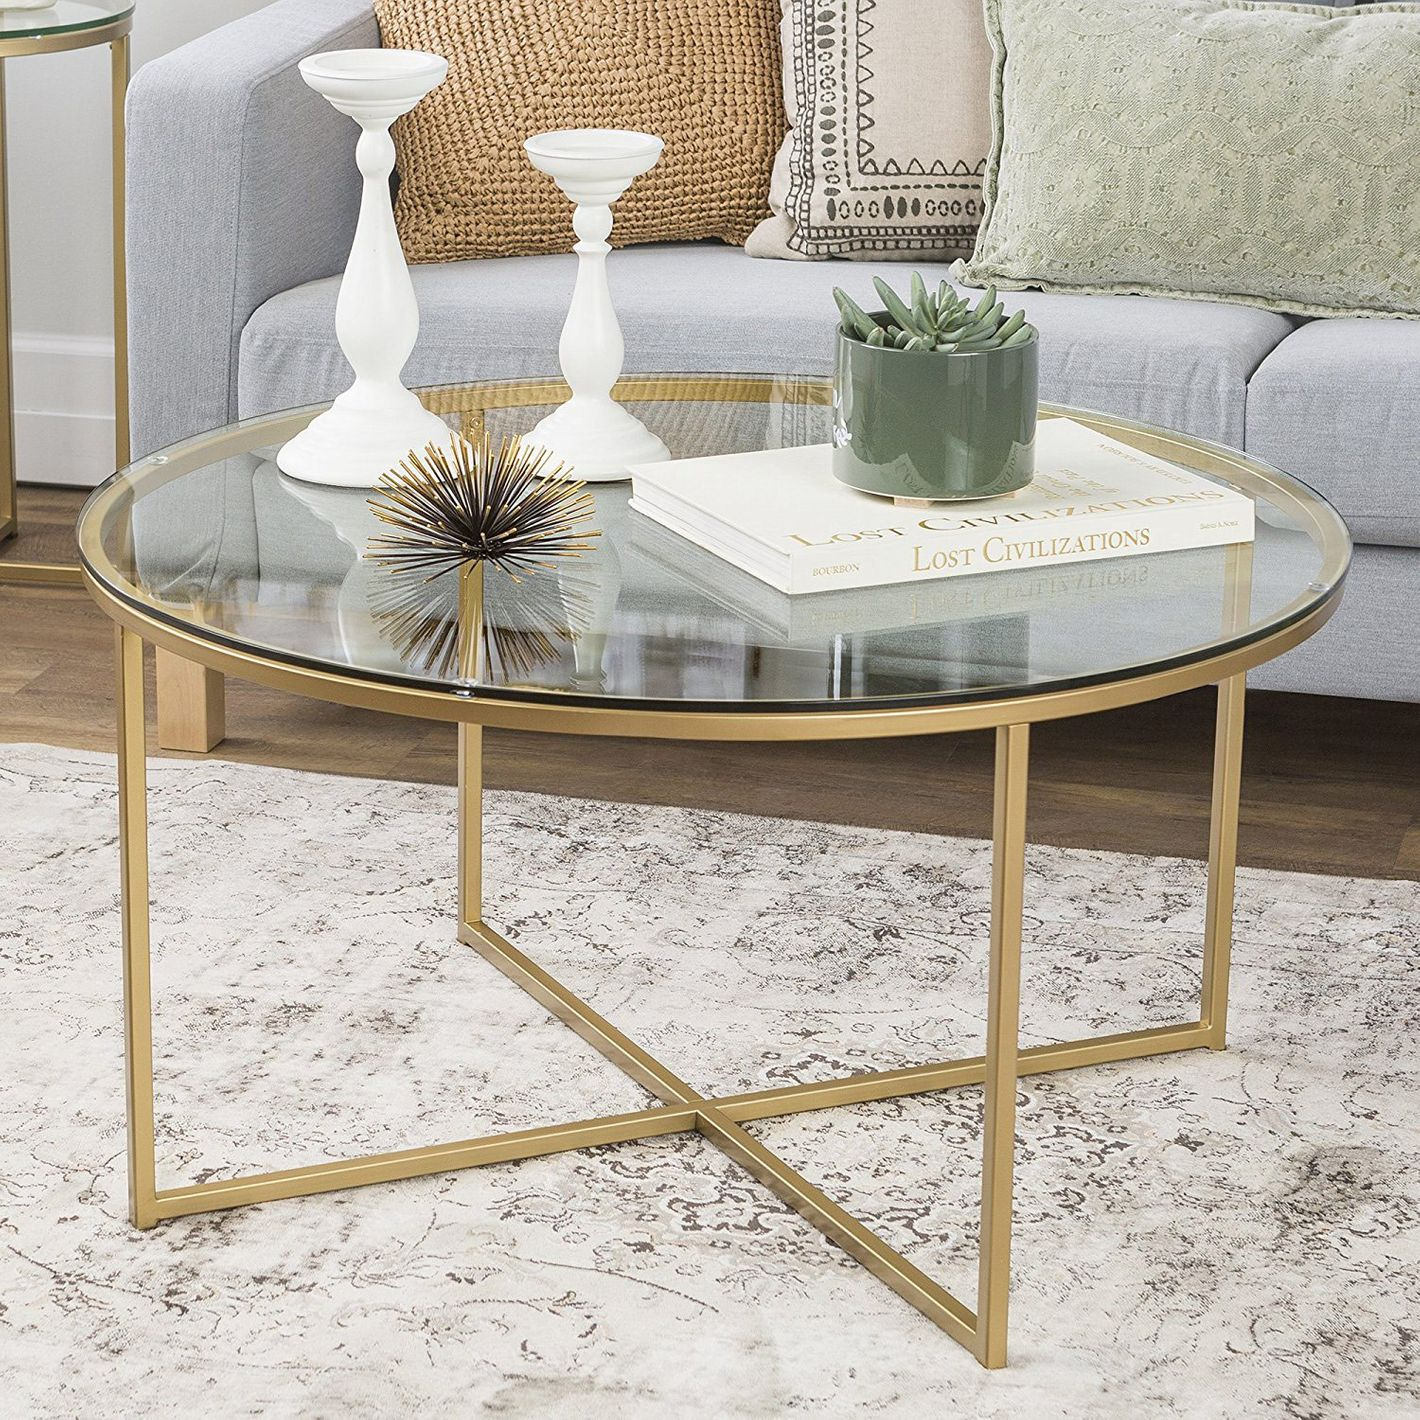 The best glass coffee tables under